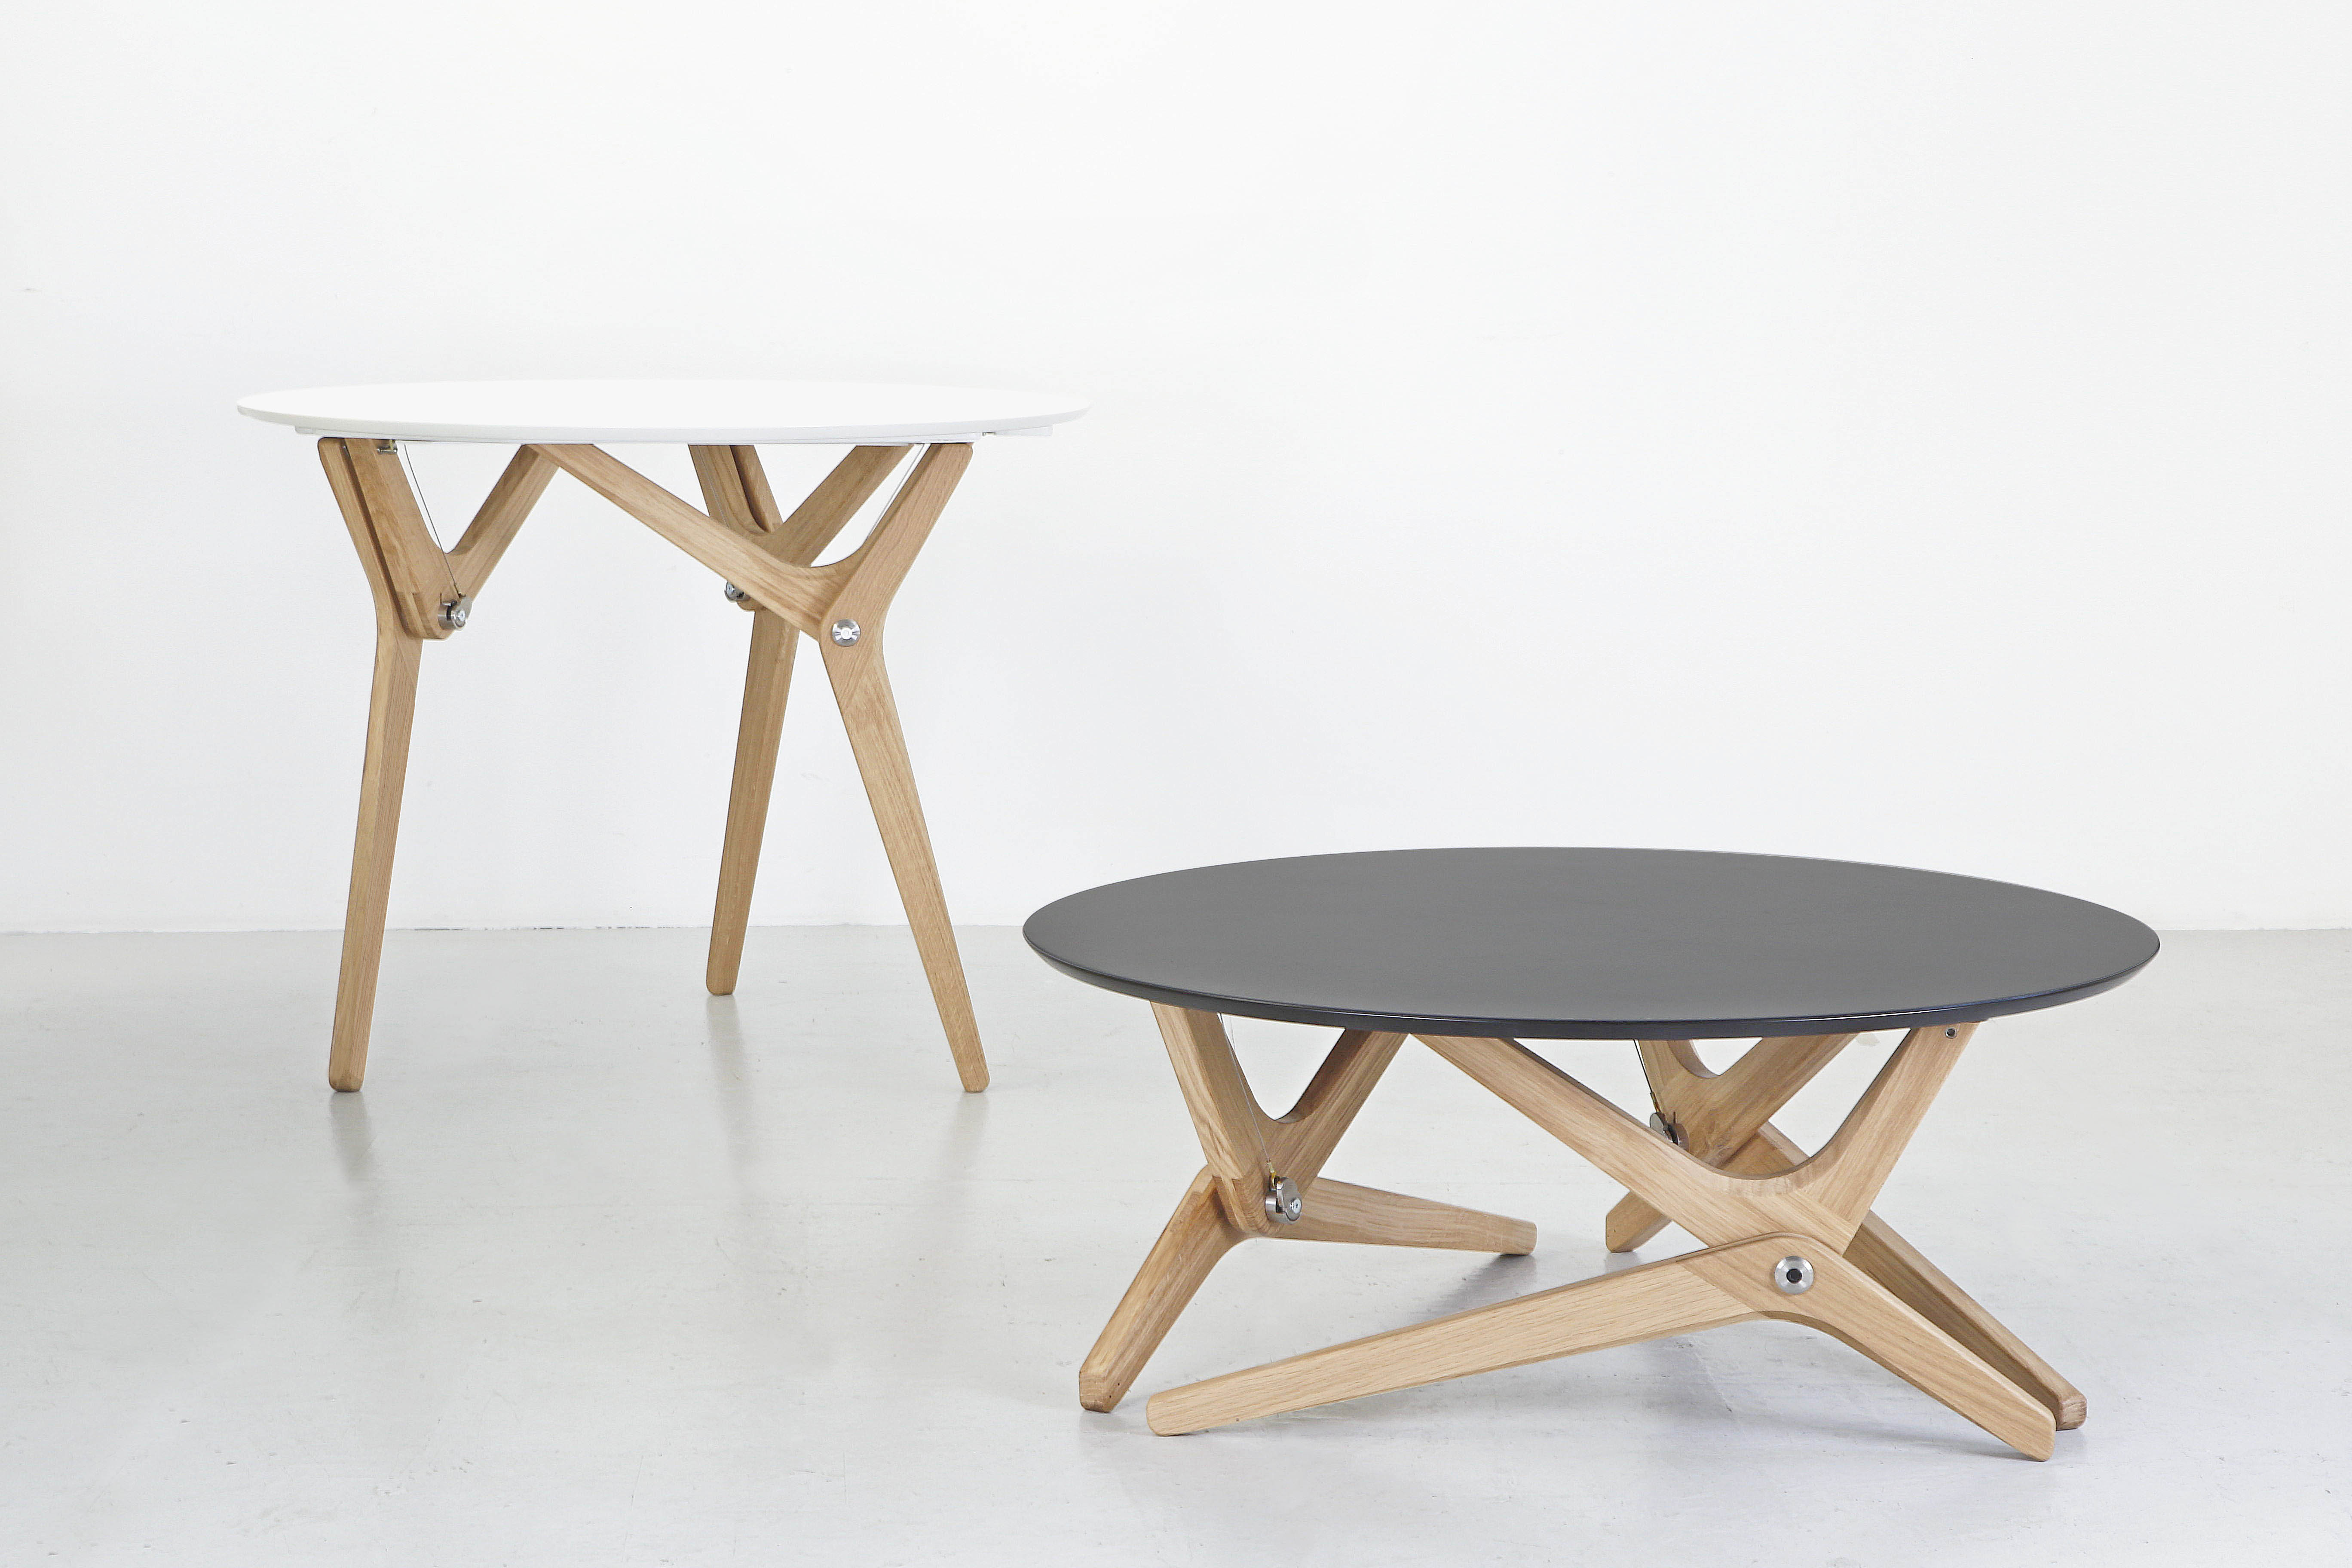 Boulon blanc reinvents the transformable table livin spaces for New table design photos